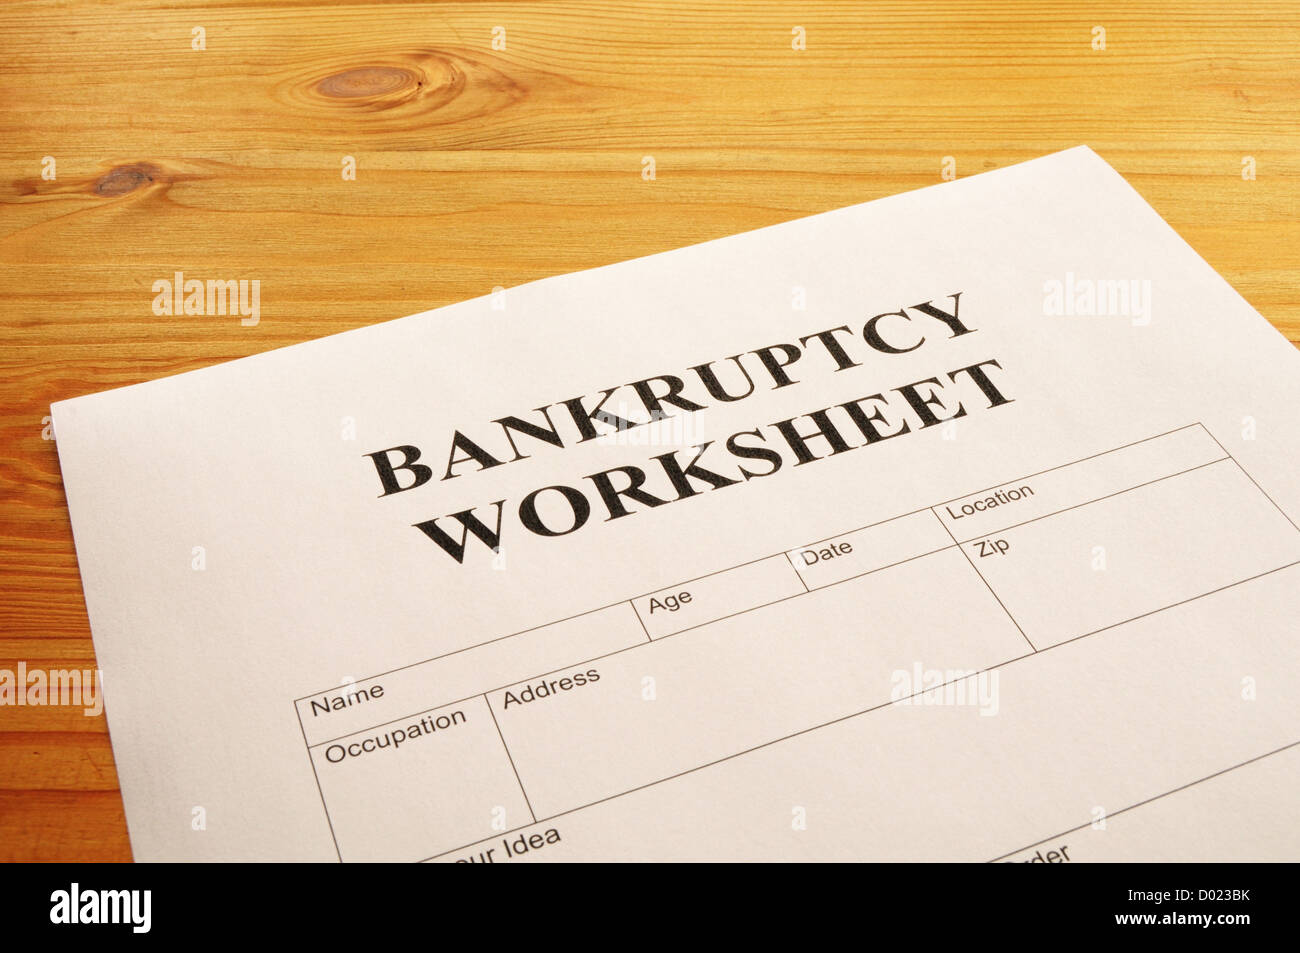 Worksheet Bankruptcy Worksheet bankruptcy worksheet form or document showing business concept stock photo concept